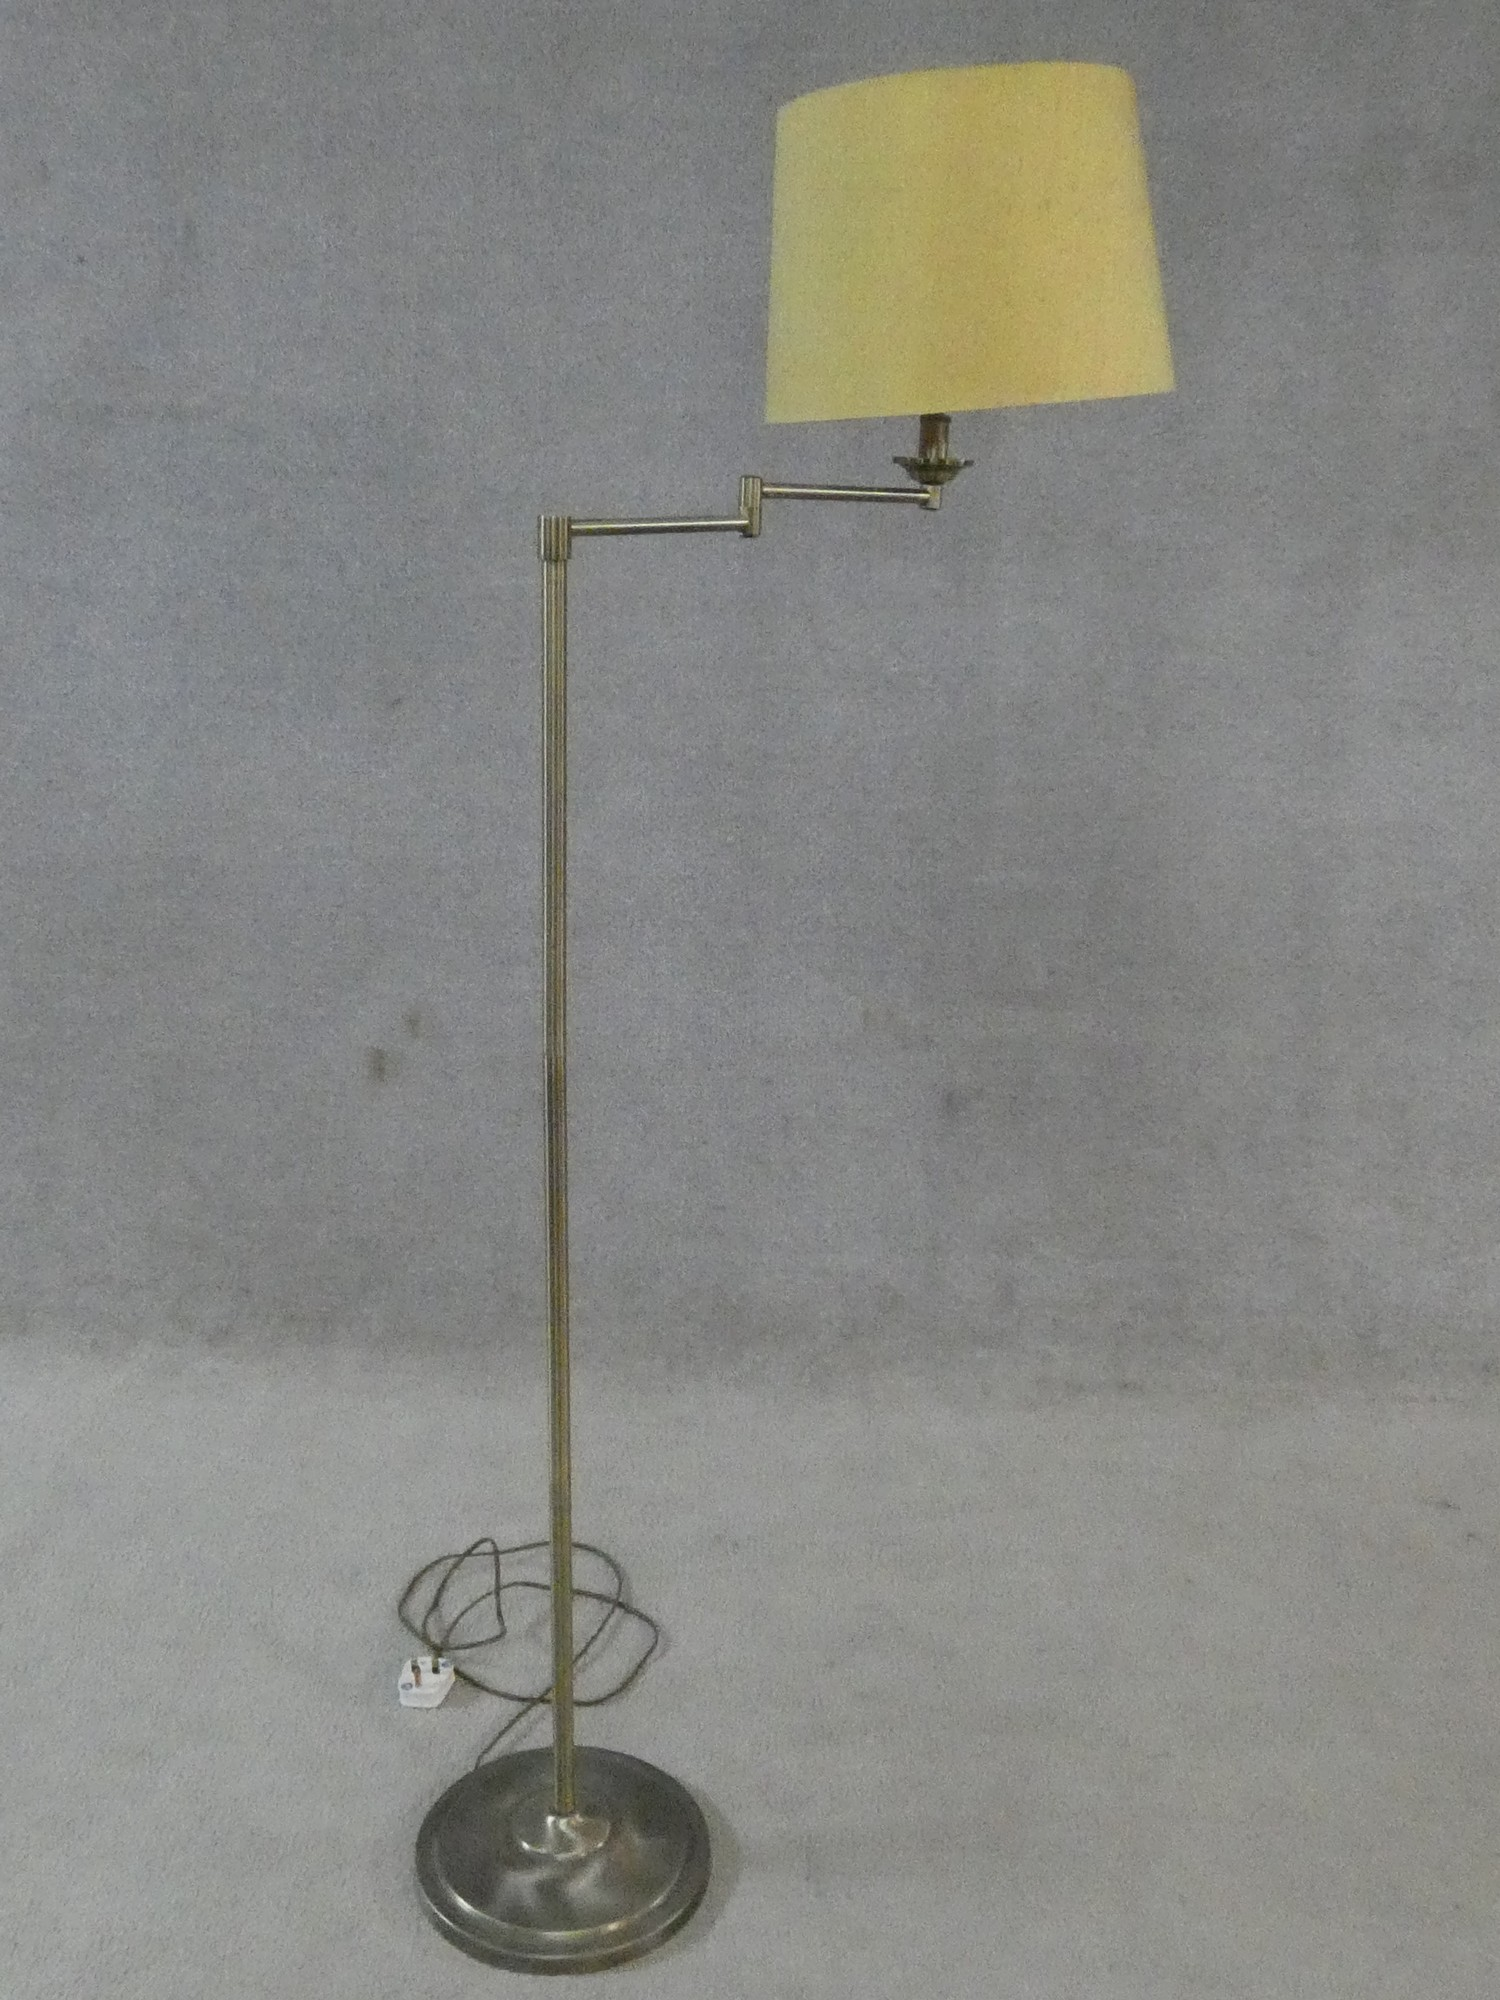 Two brass standard lamps with articulated actions and a chrome adjustable standard lamp. H.162cm - Image 13 of 16